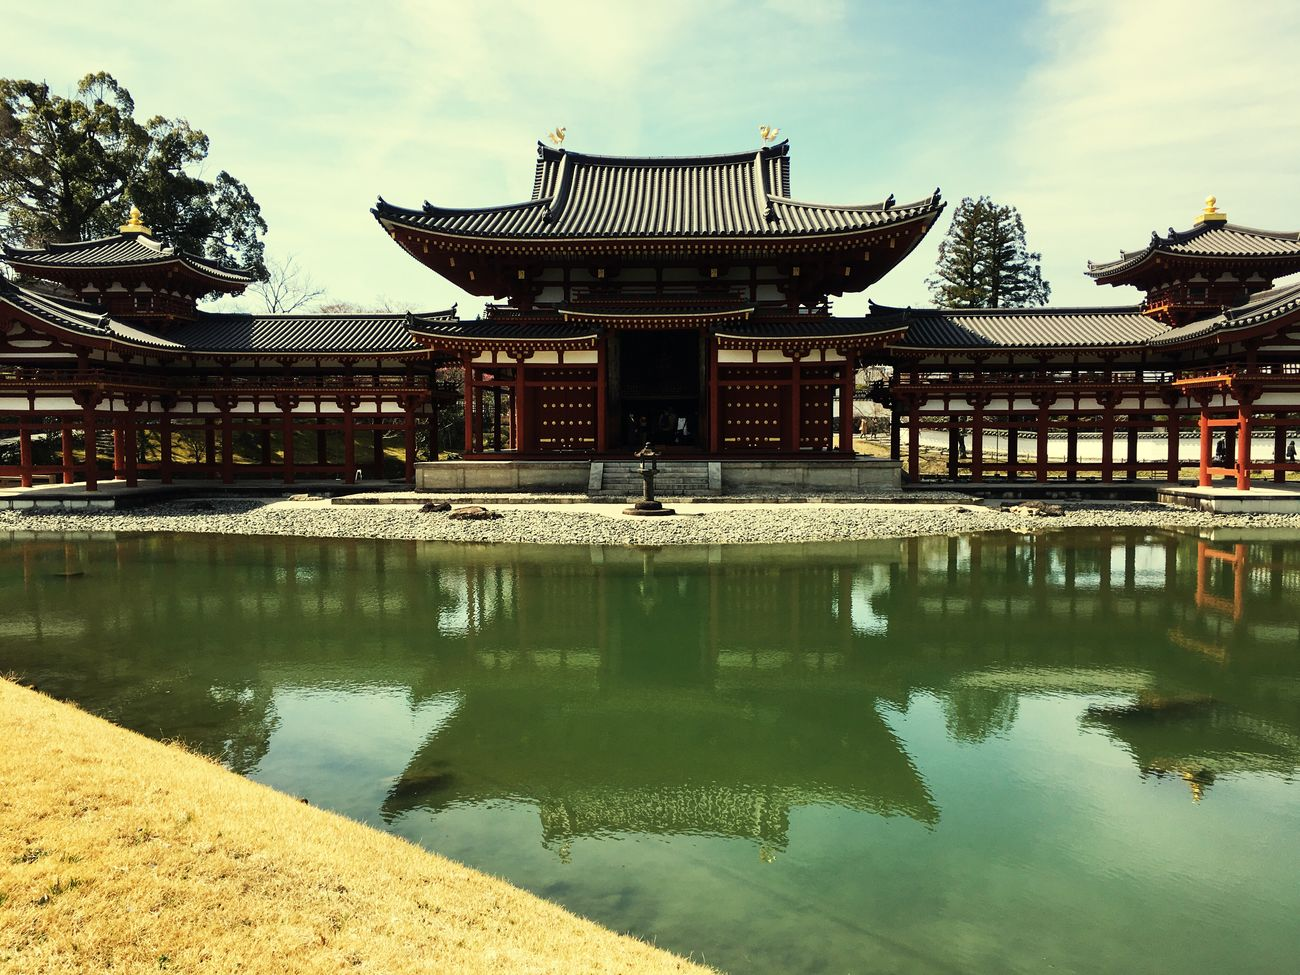 Byodoin Temple Japanese Culture Old Buildings Kyoto, Japan 10yen Coin Heian Age Uji City EyeEm Best Shots